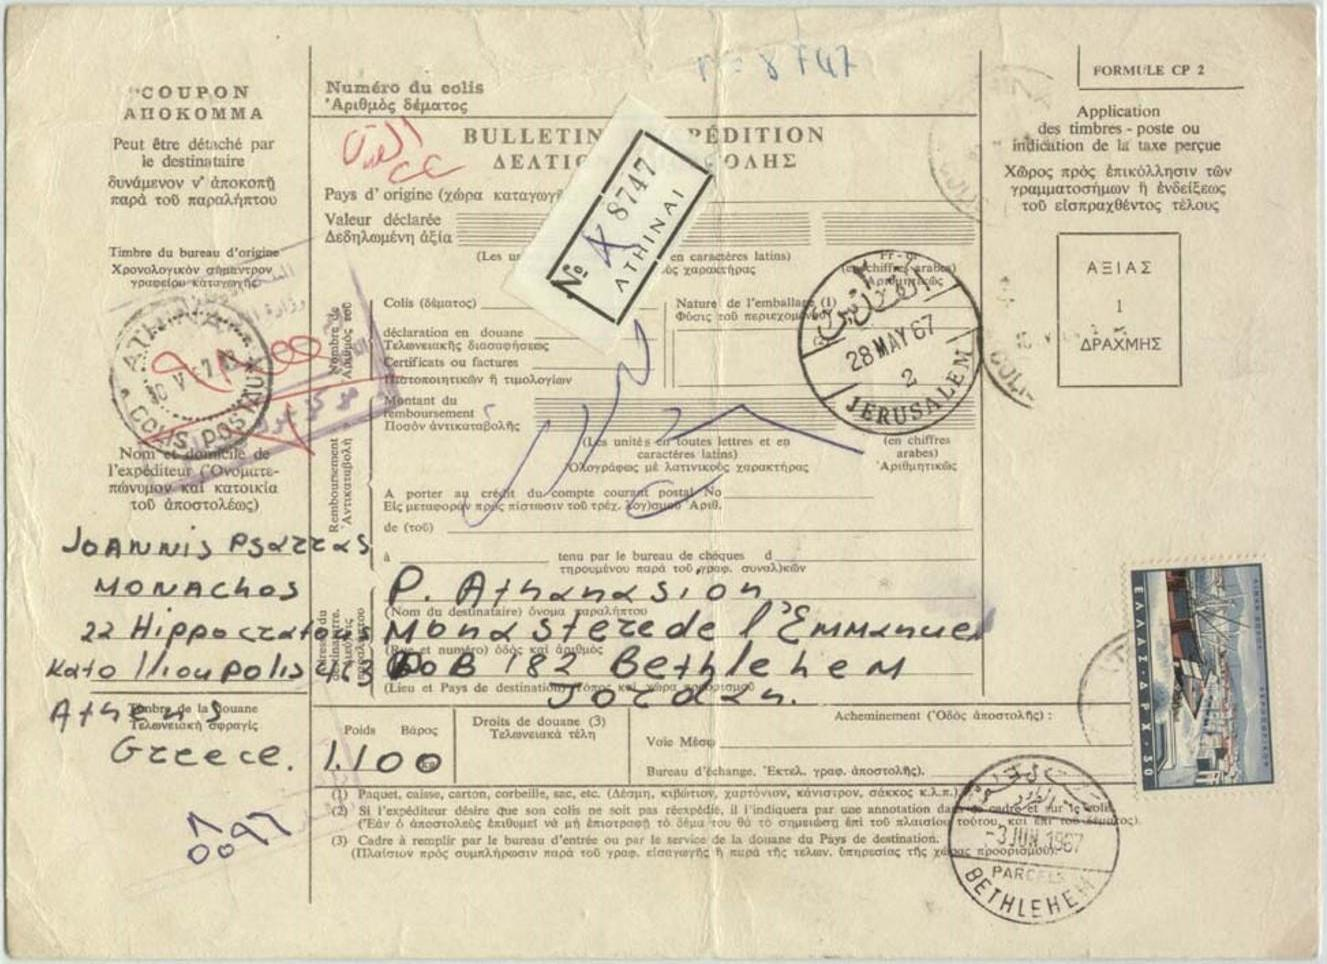 1967 War Israel-captured mail: 10 V 1967 surface-mailed parcel card ex ATHENS to BETHLEHEM Jordan, franked 30d per parcel rate & tied by multiple strikes of local pmk; sent via AMM